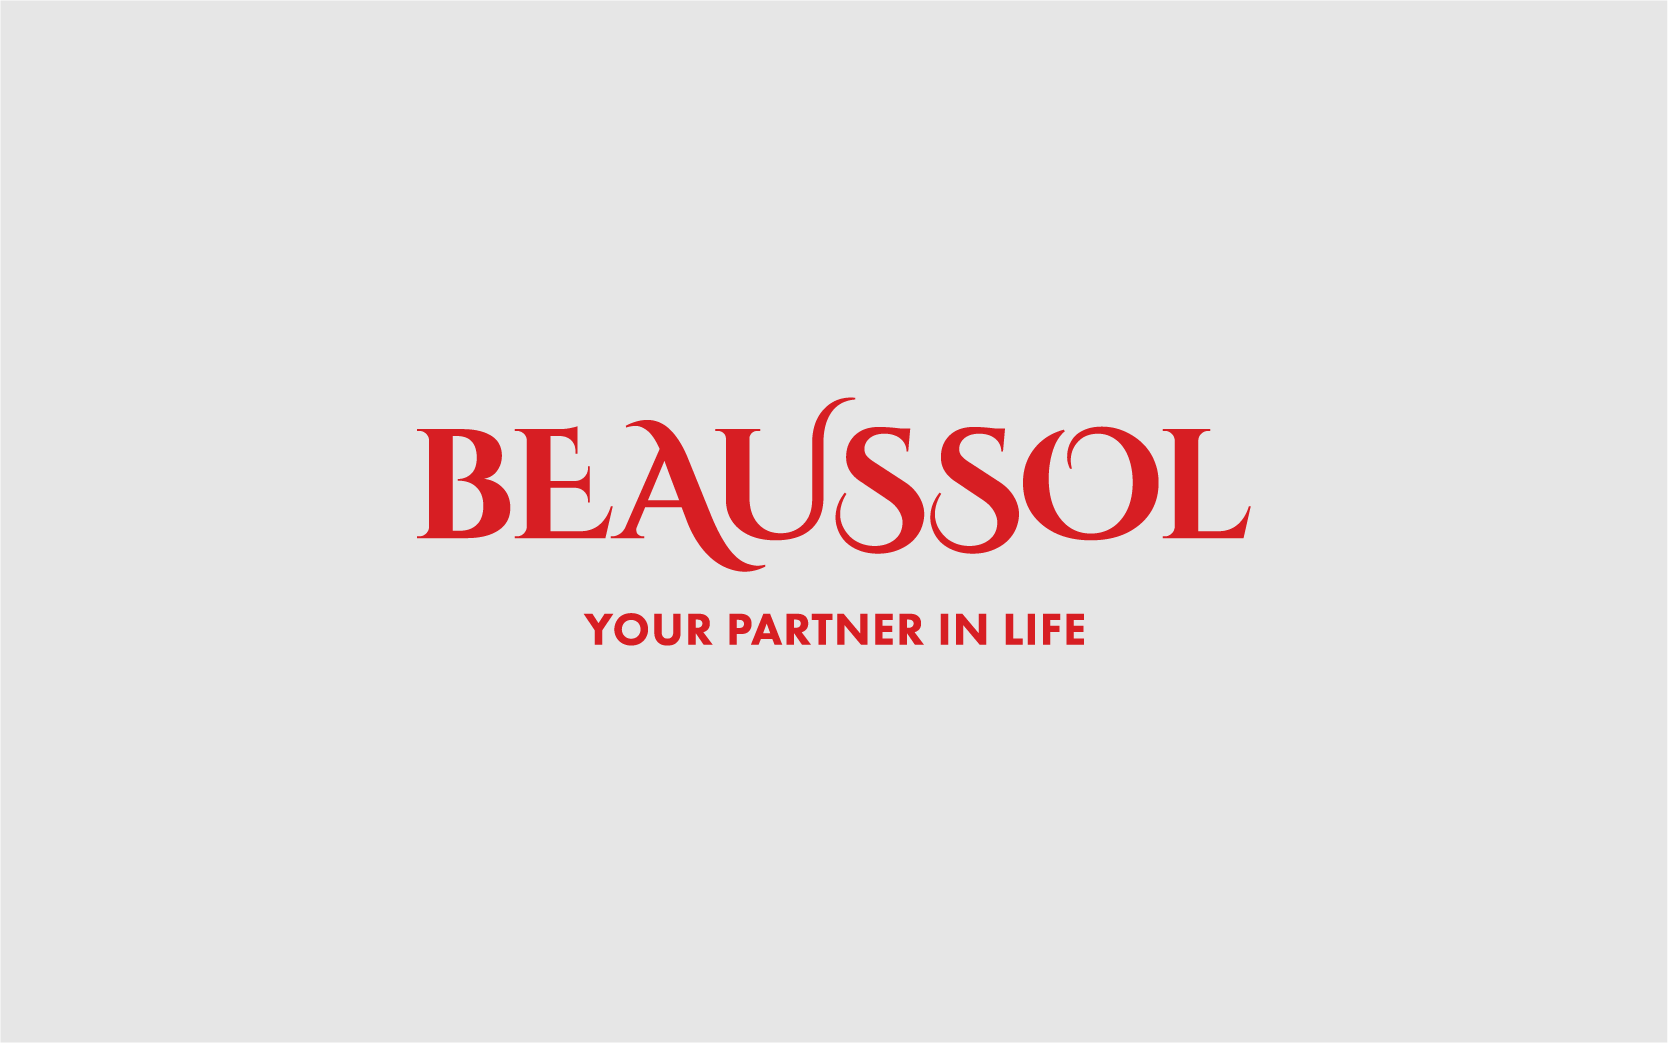 beaussol-digital-06.png